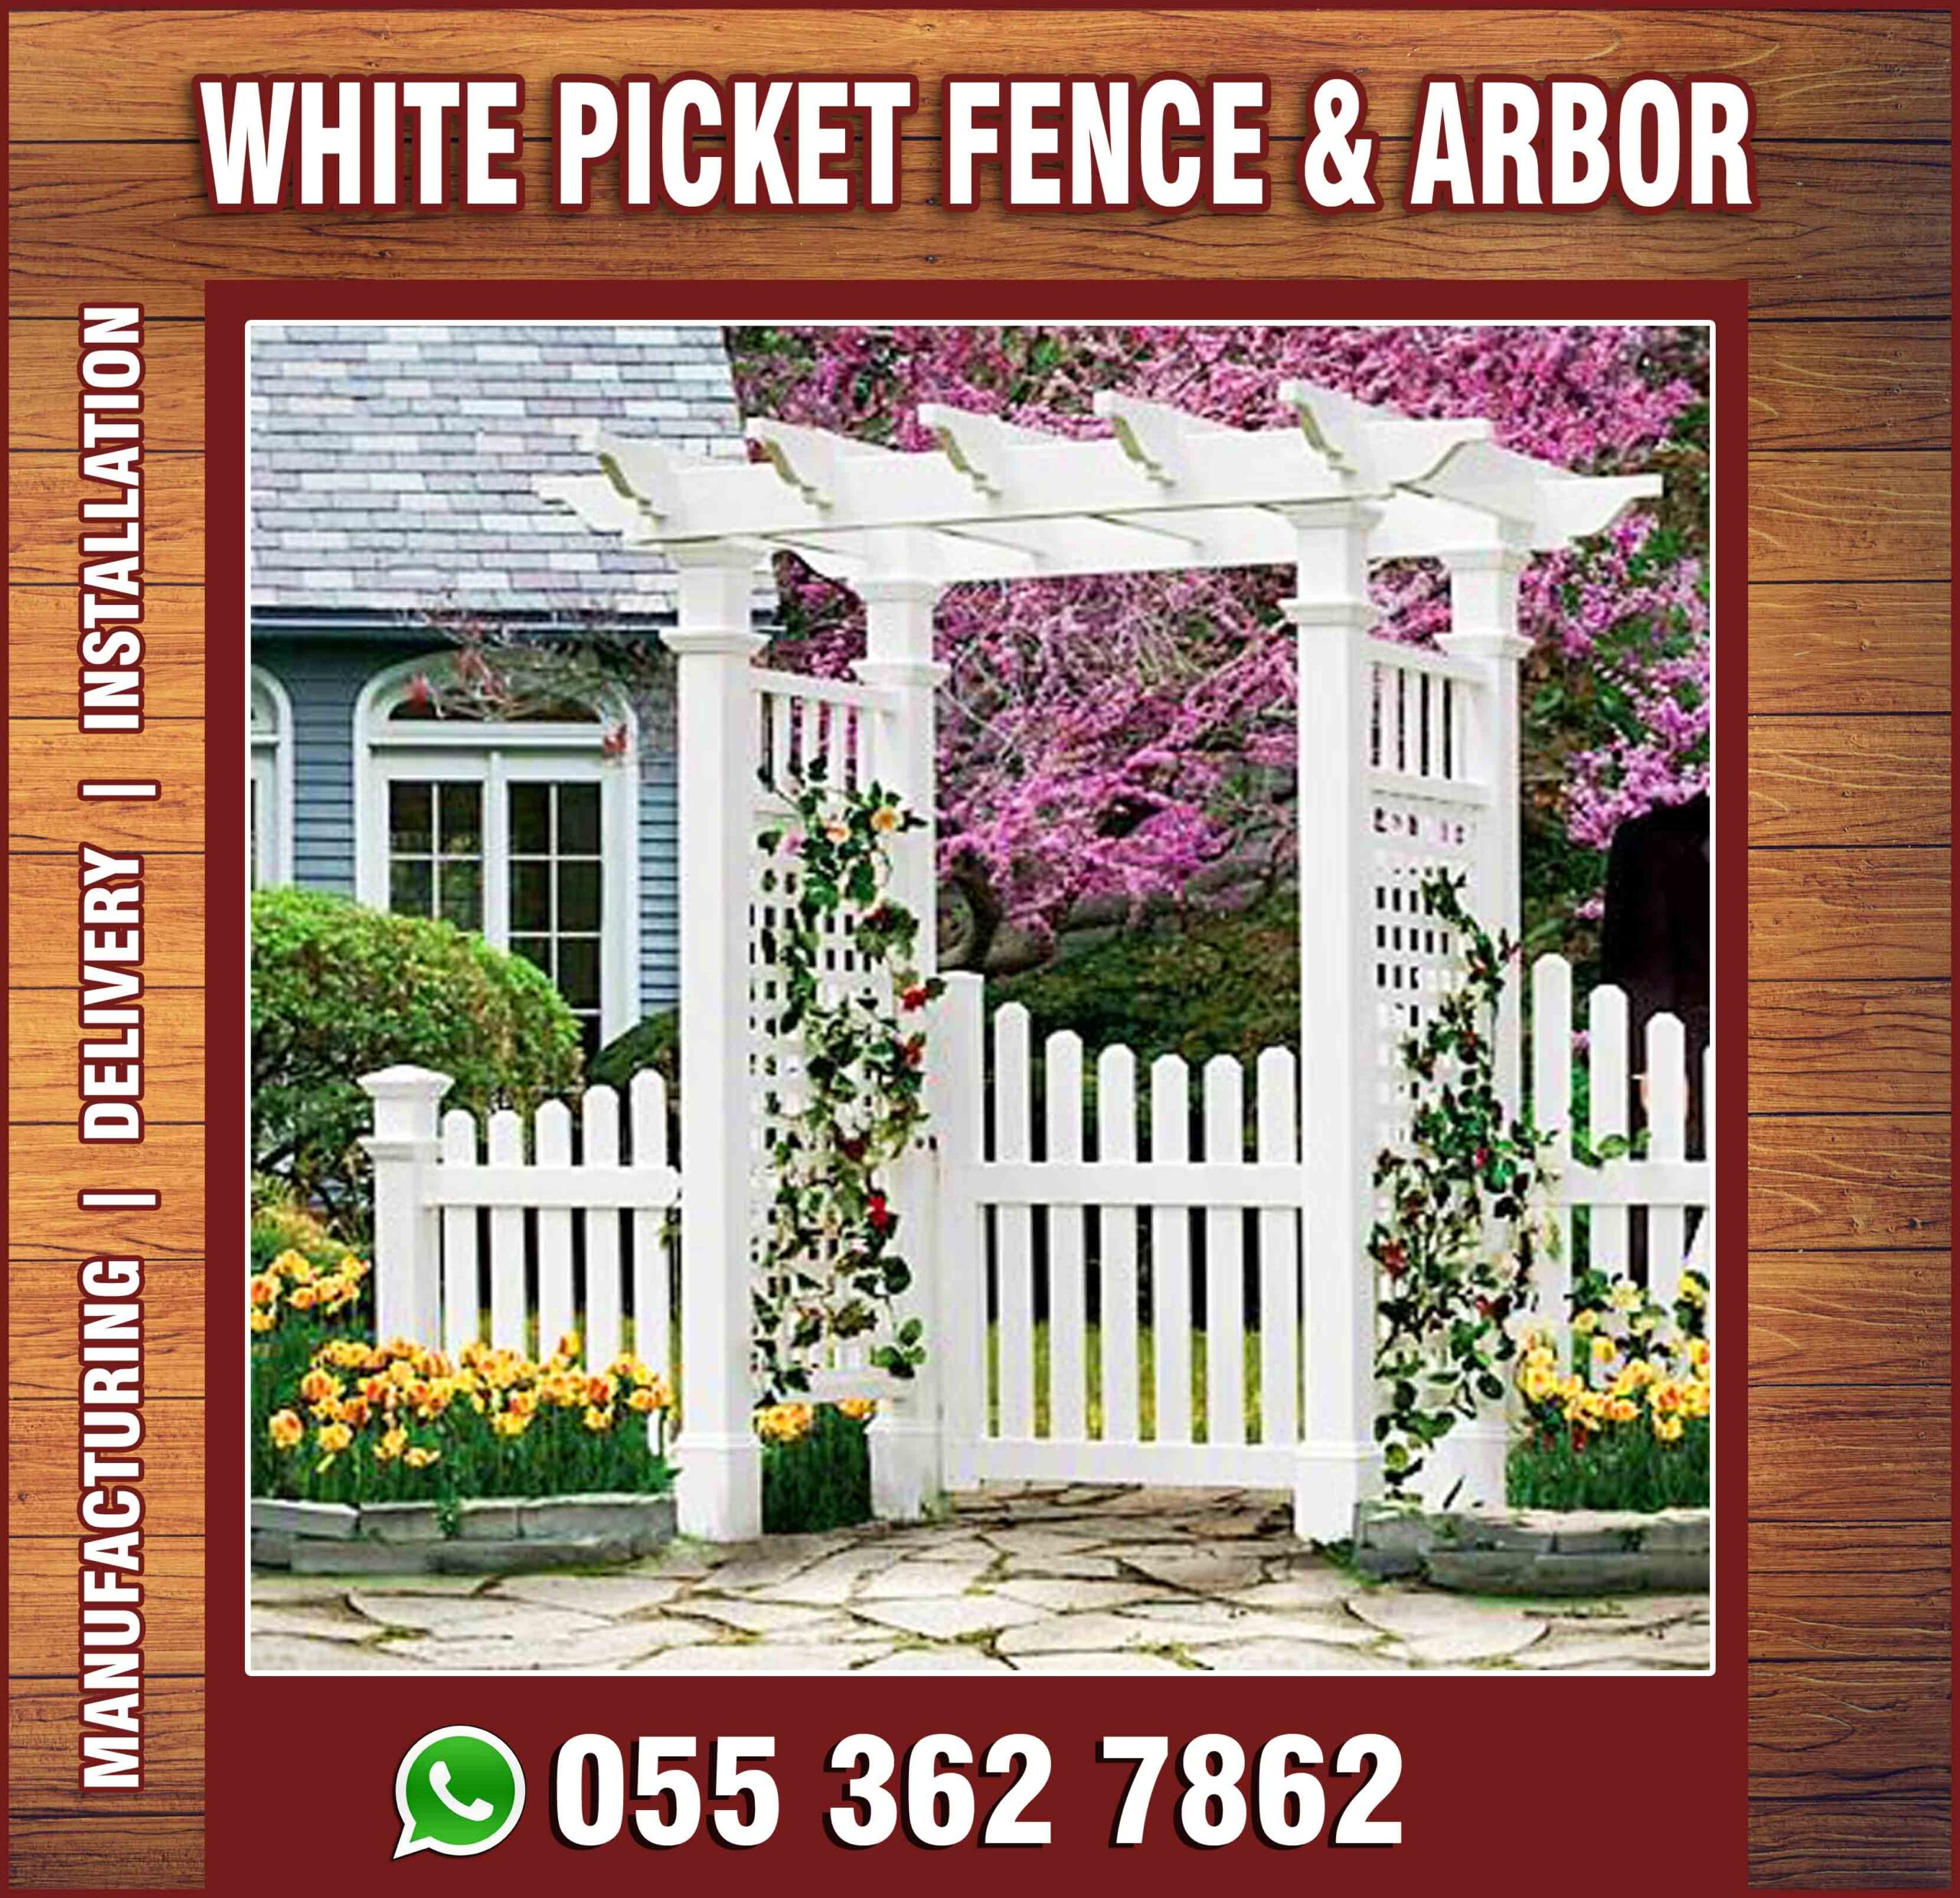 White Picket fences and Arbor in UAE.jpg